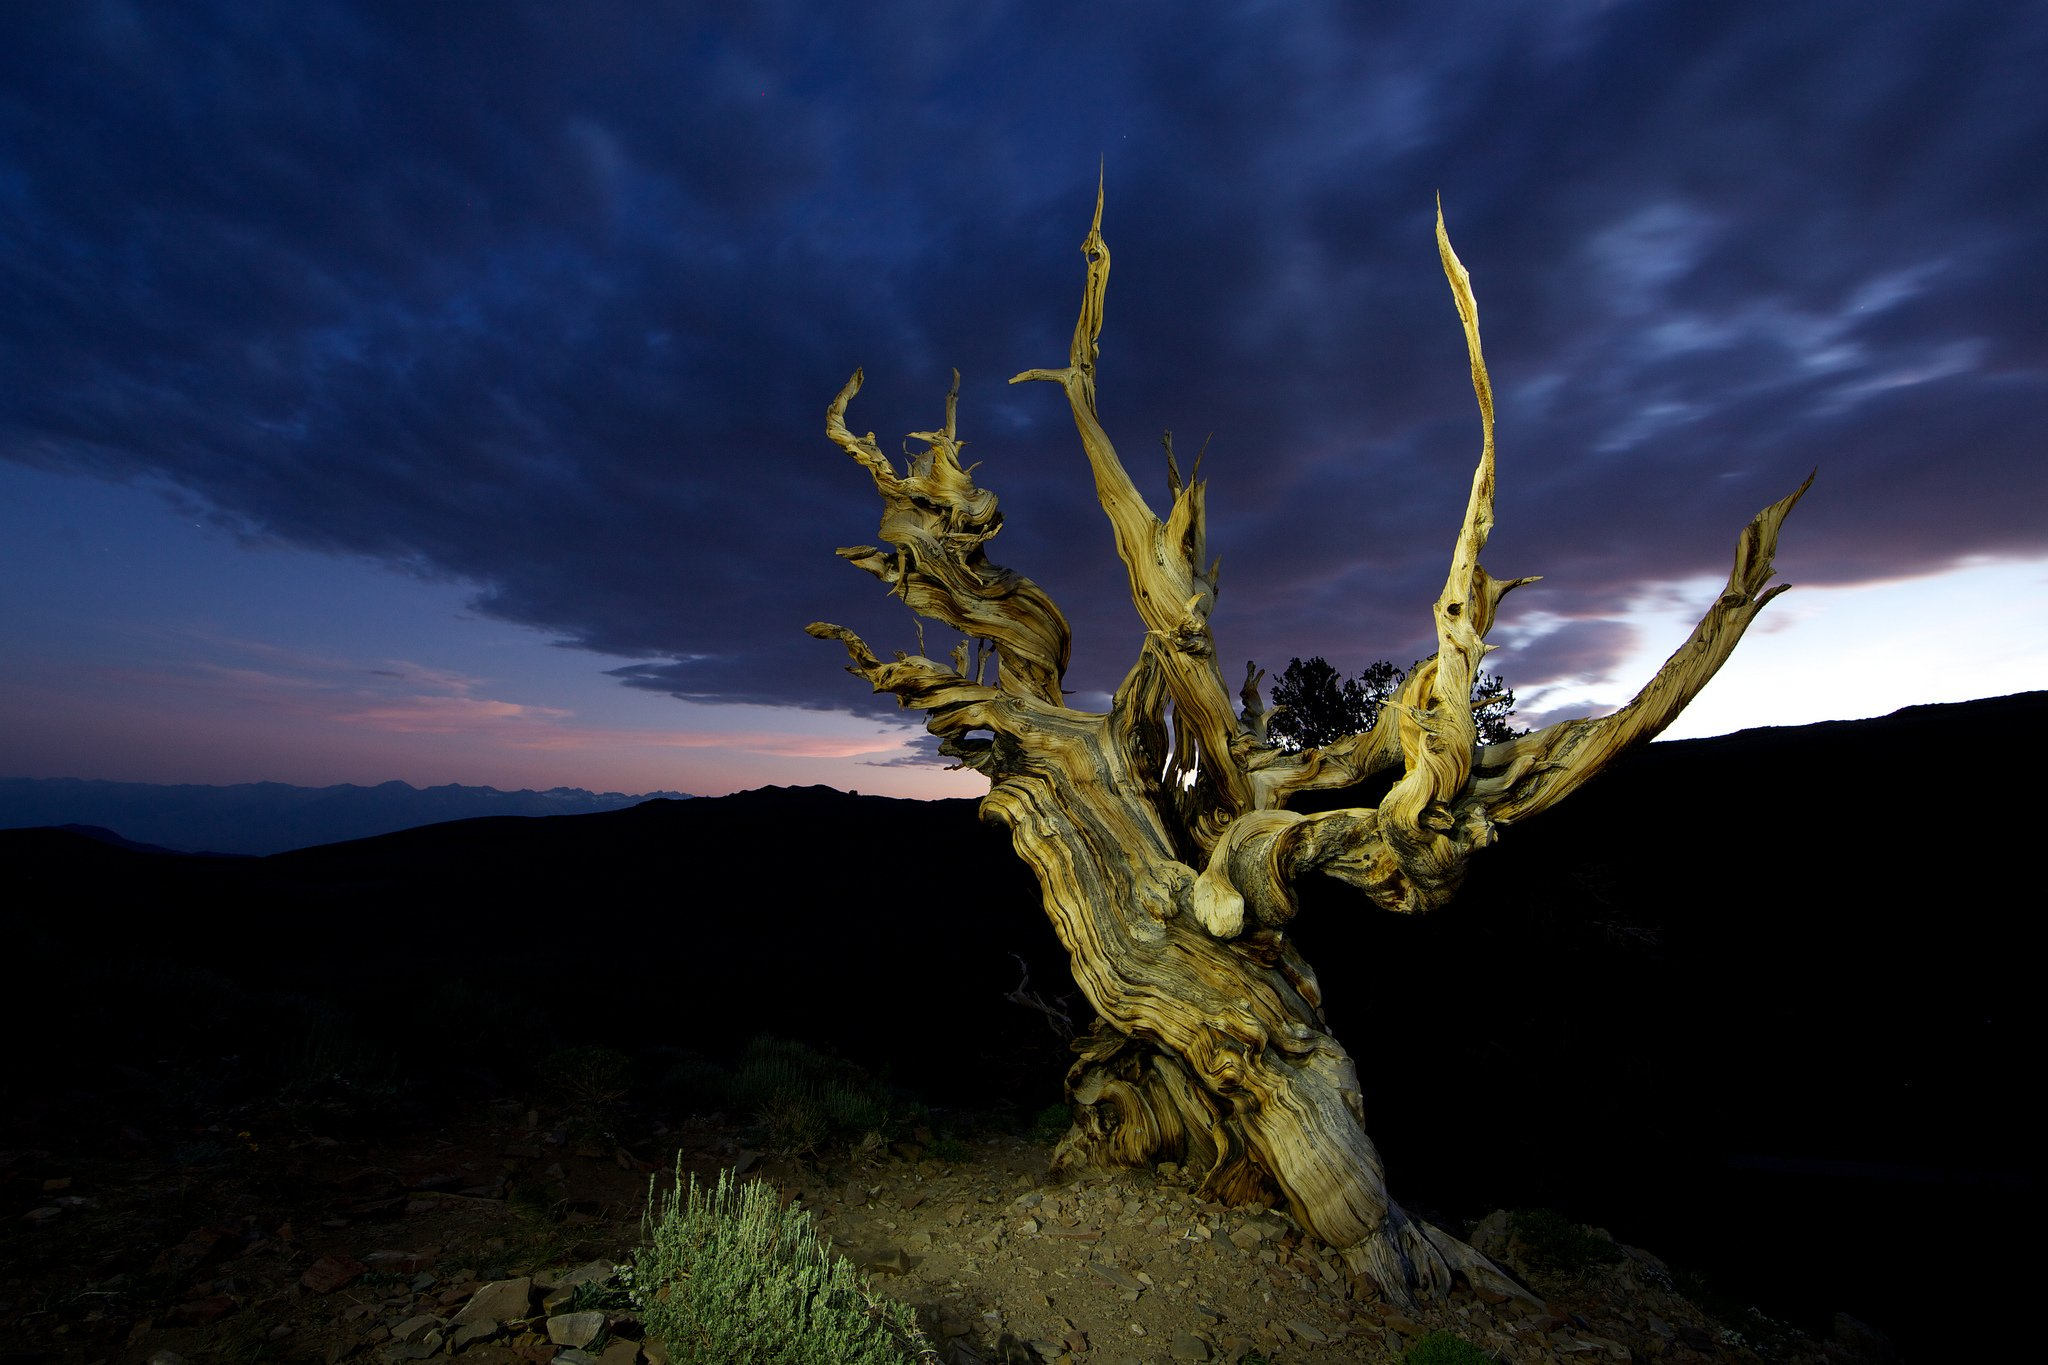 Methuselah Tree, Bristlecone pine, White Mountain, California